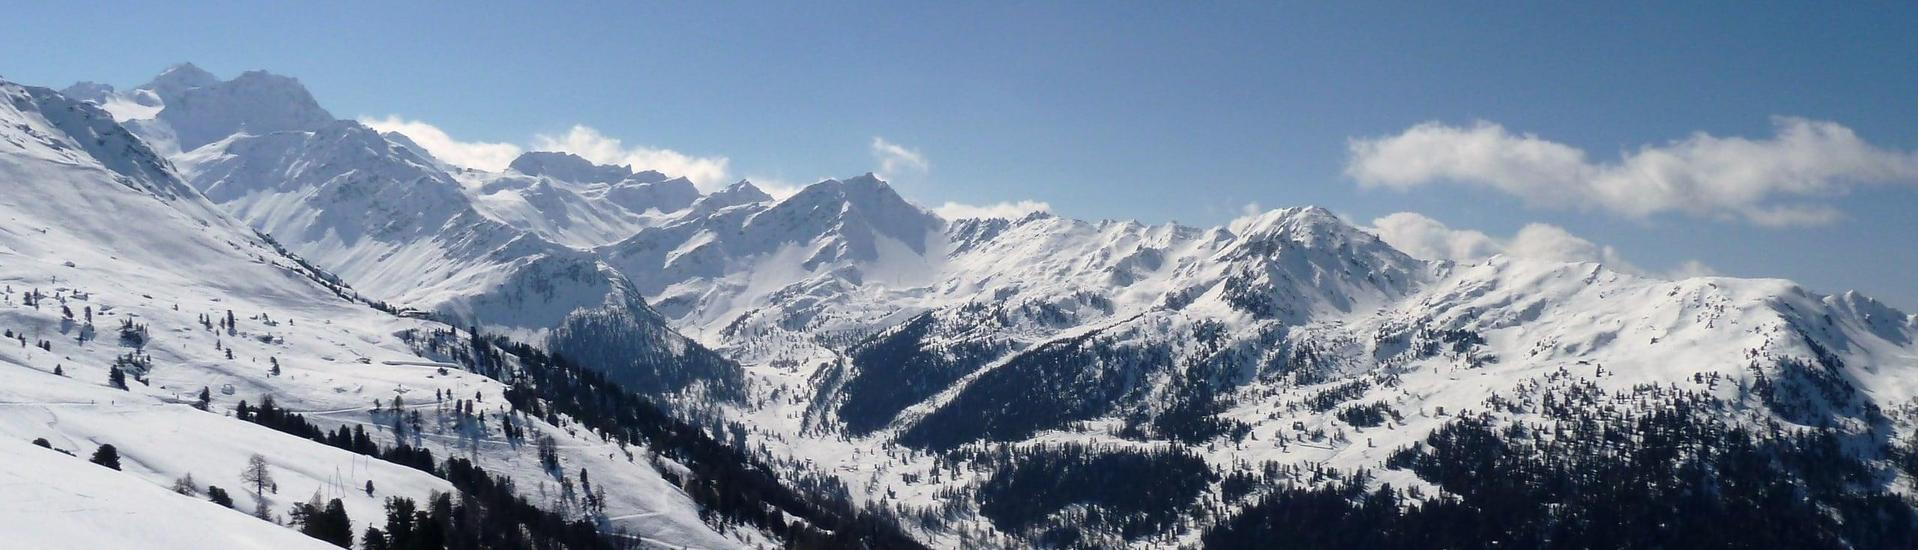 View over the sunny mountain landscape while learning to ski with the ski schools in Nendaz.